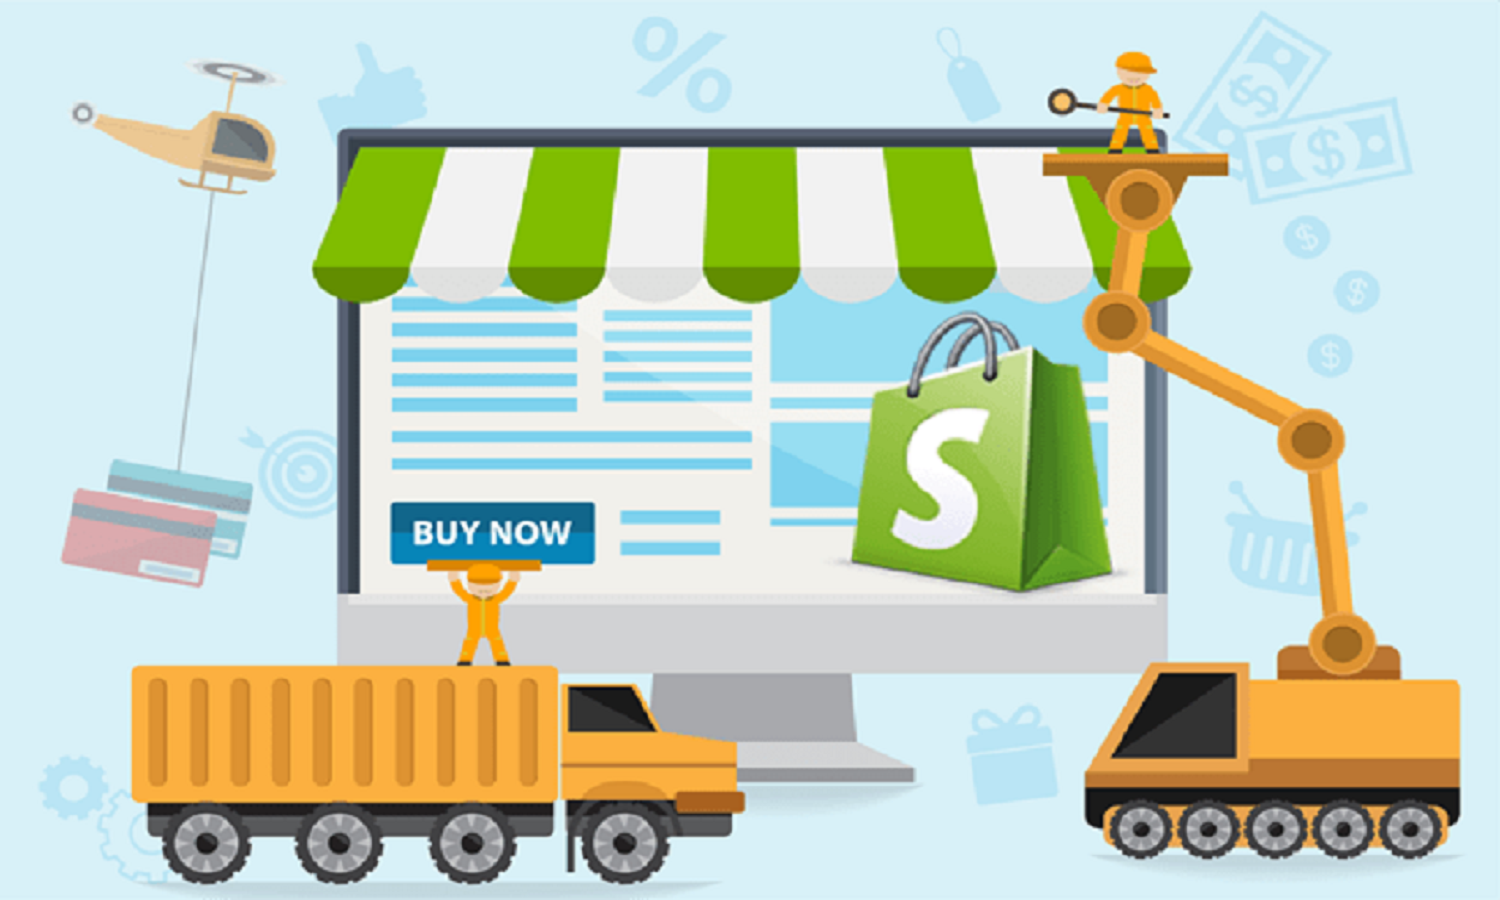 TechIndia Software- A One-Stop Shop For Shopify Web Development Services